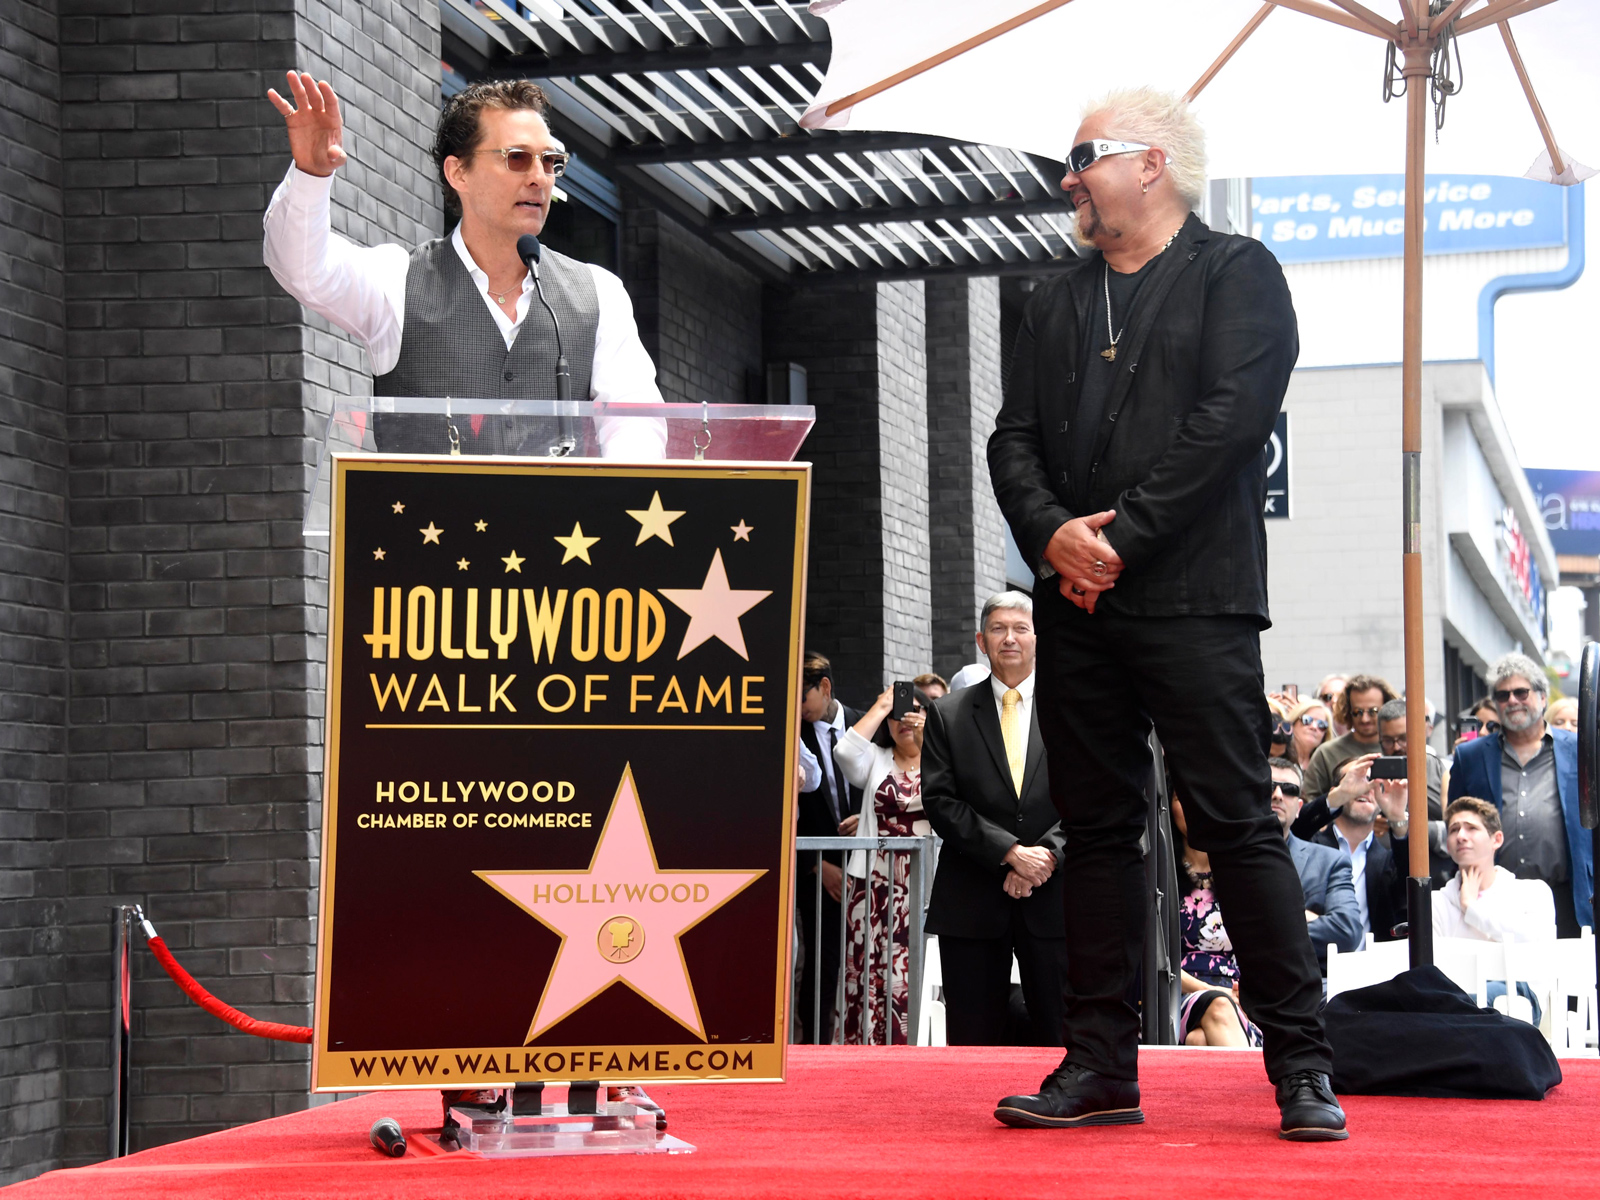 guy-fieri-walk-of-fame-3-FT-BLOG0519.jpg